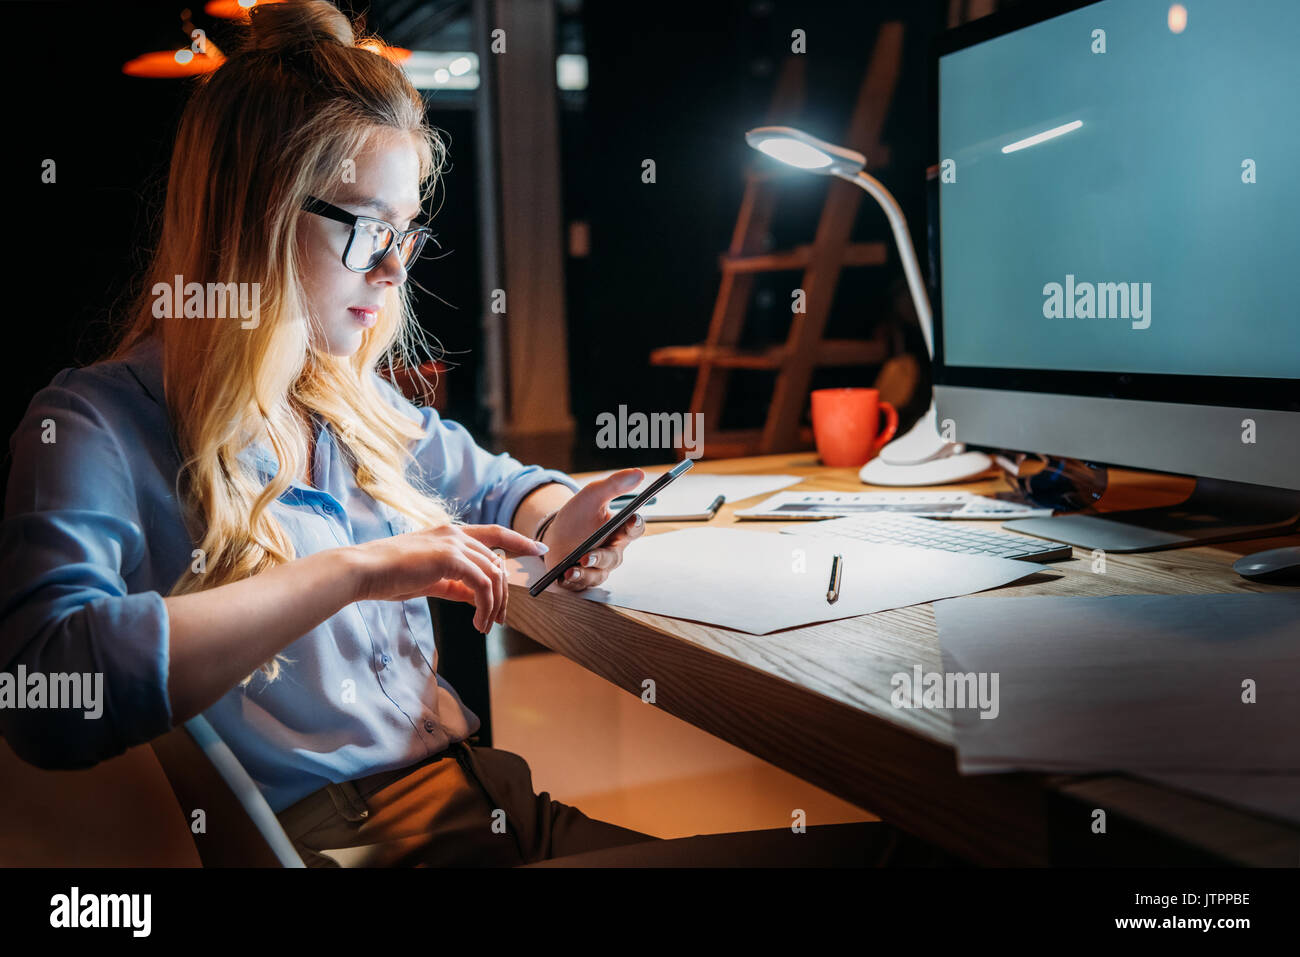 young blonde caucasian businesswoman in eyeglasses using smartphone and sitting at workplace with computer  - Stock Image